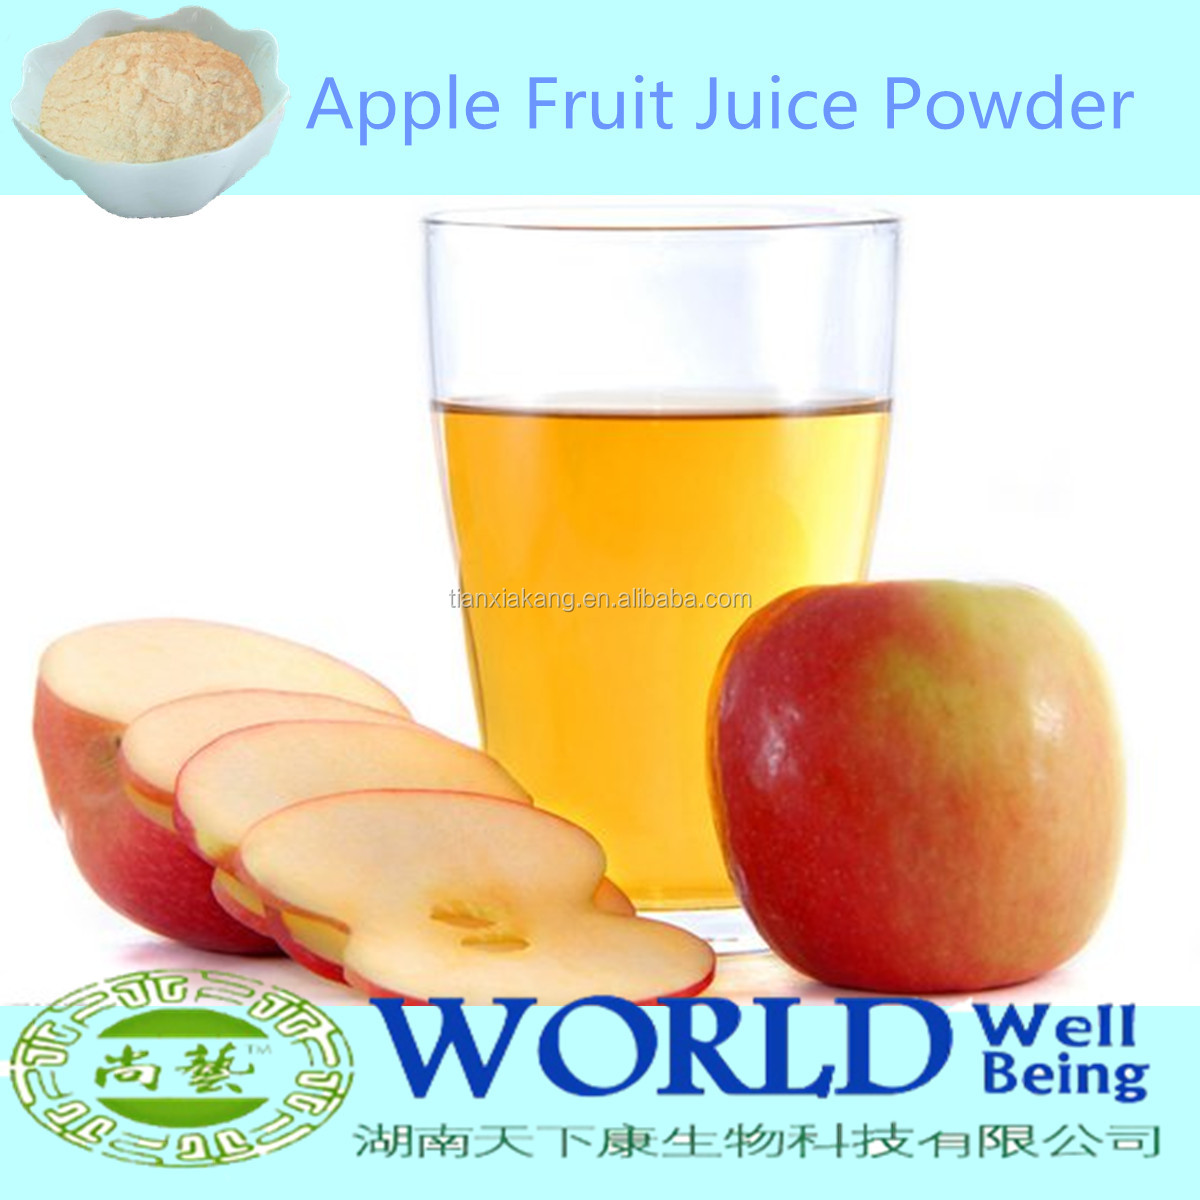 China Factory Pure Spray Dried Apple Juice Powder/Apple Juice Concentrate/Apple Pectin Powder